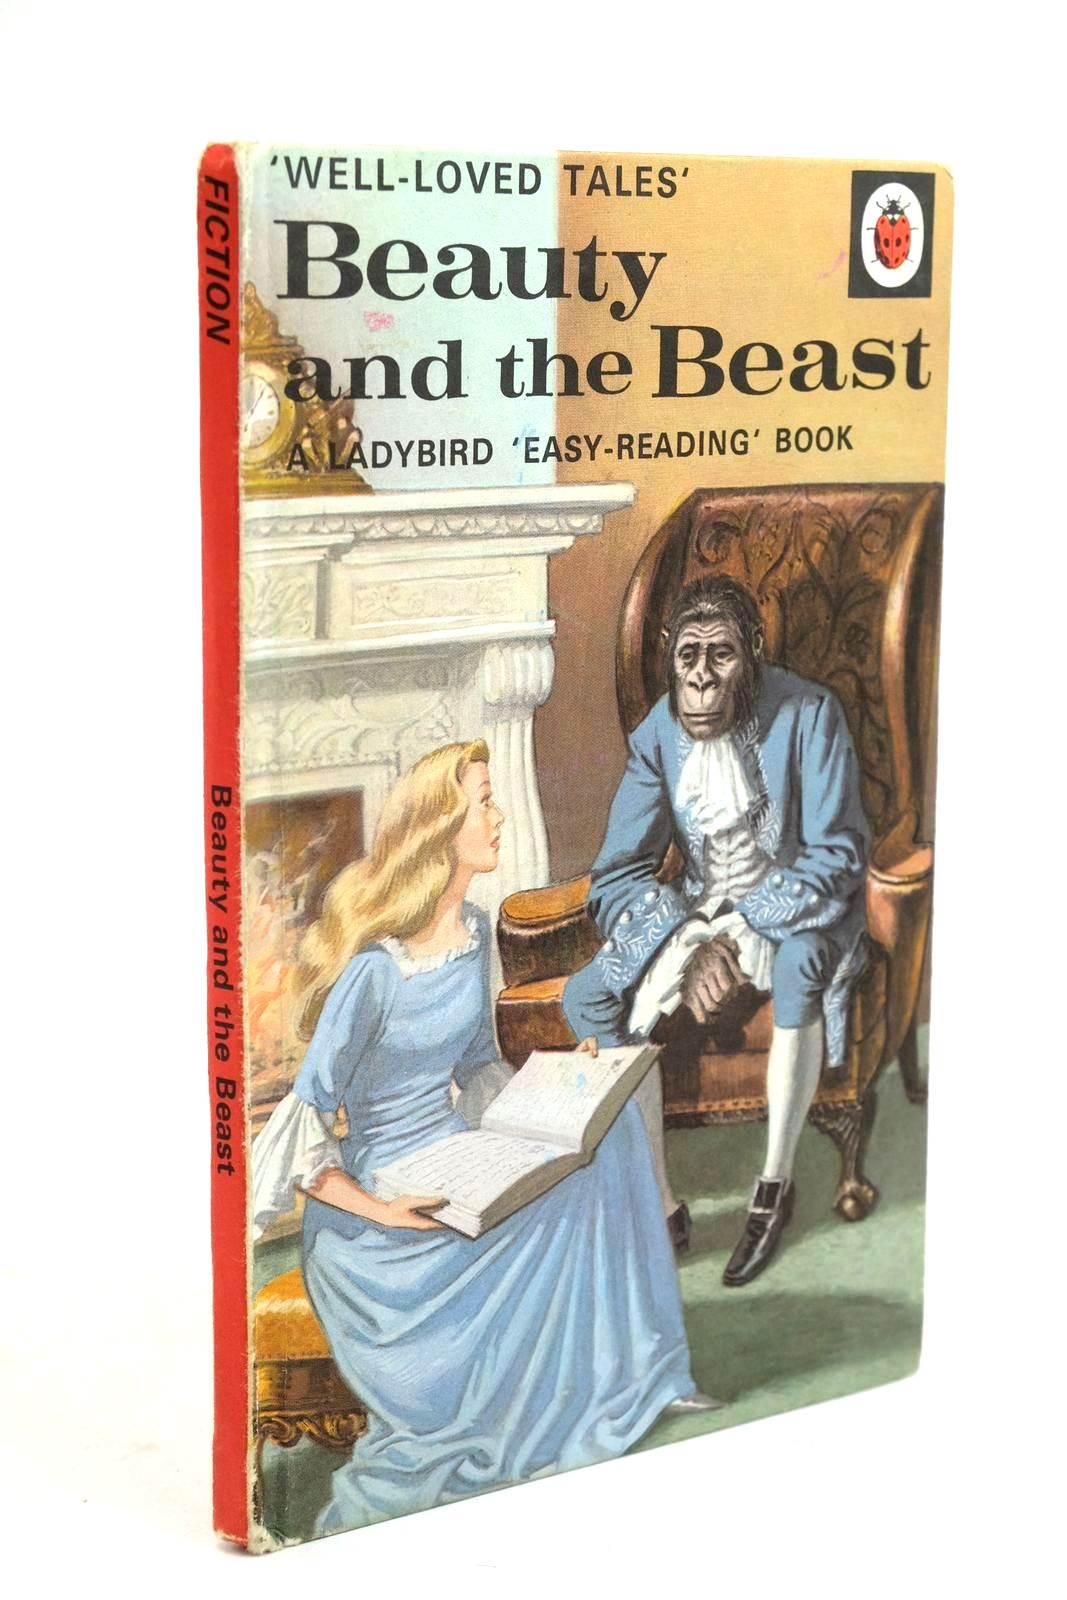 Photo of BEAUTY AND THE BEAST written by Southgate, Vera illustrated by Winter, Eric published by Wills & Hepworth Ltd. (STOCK CODE: 1321454)  for sale by Stella & Rose's Books